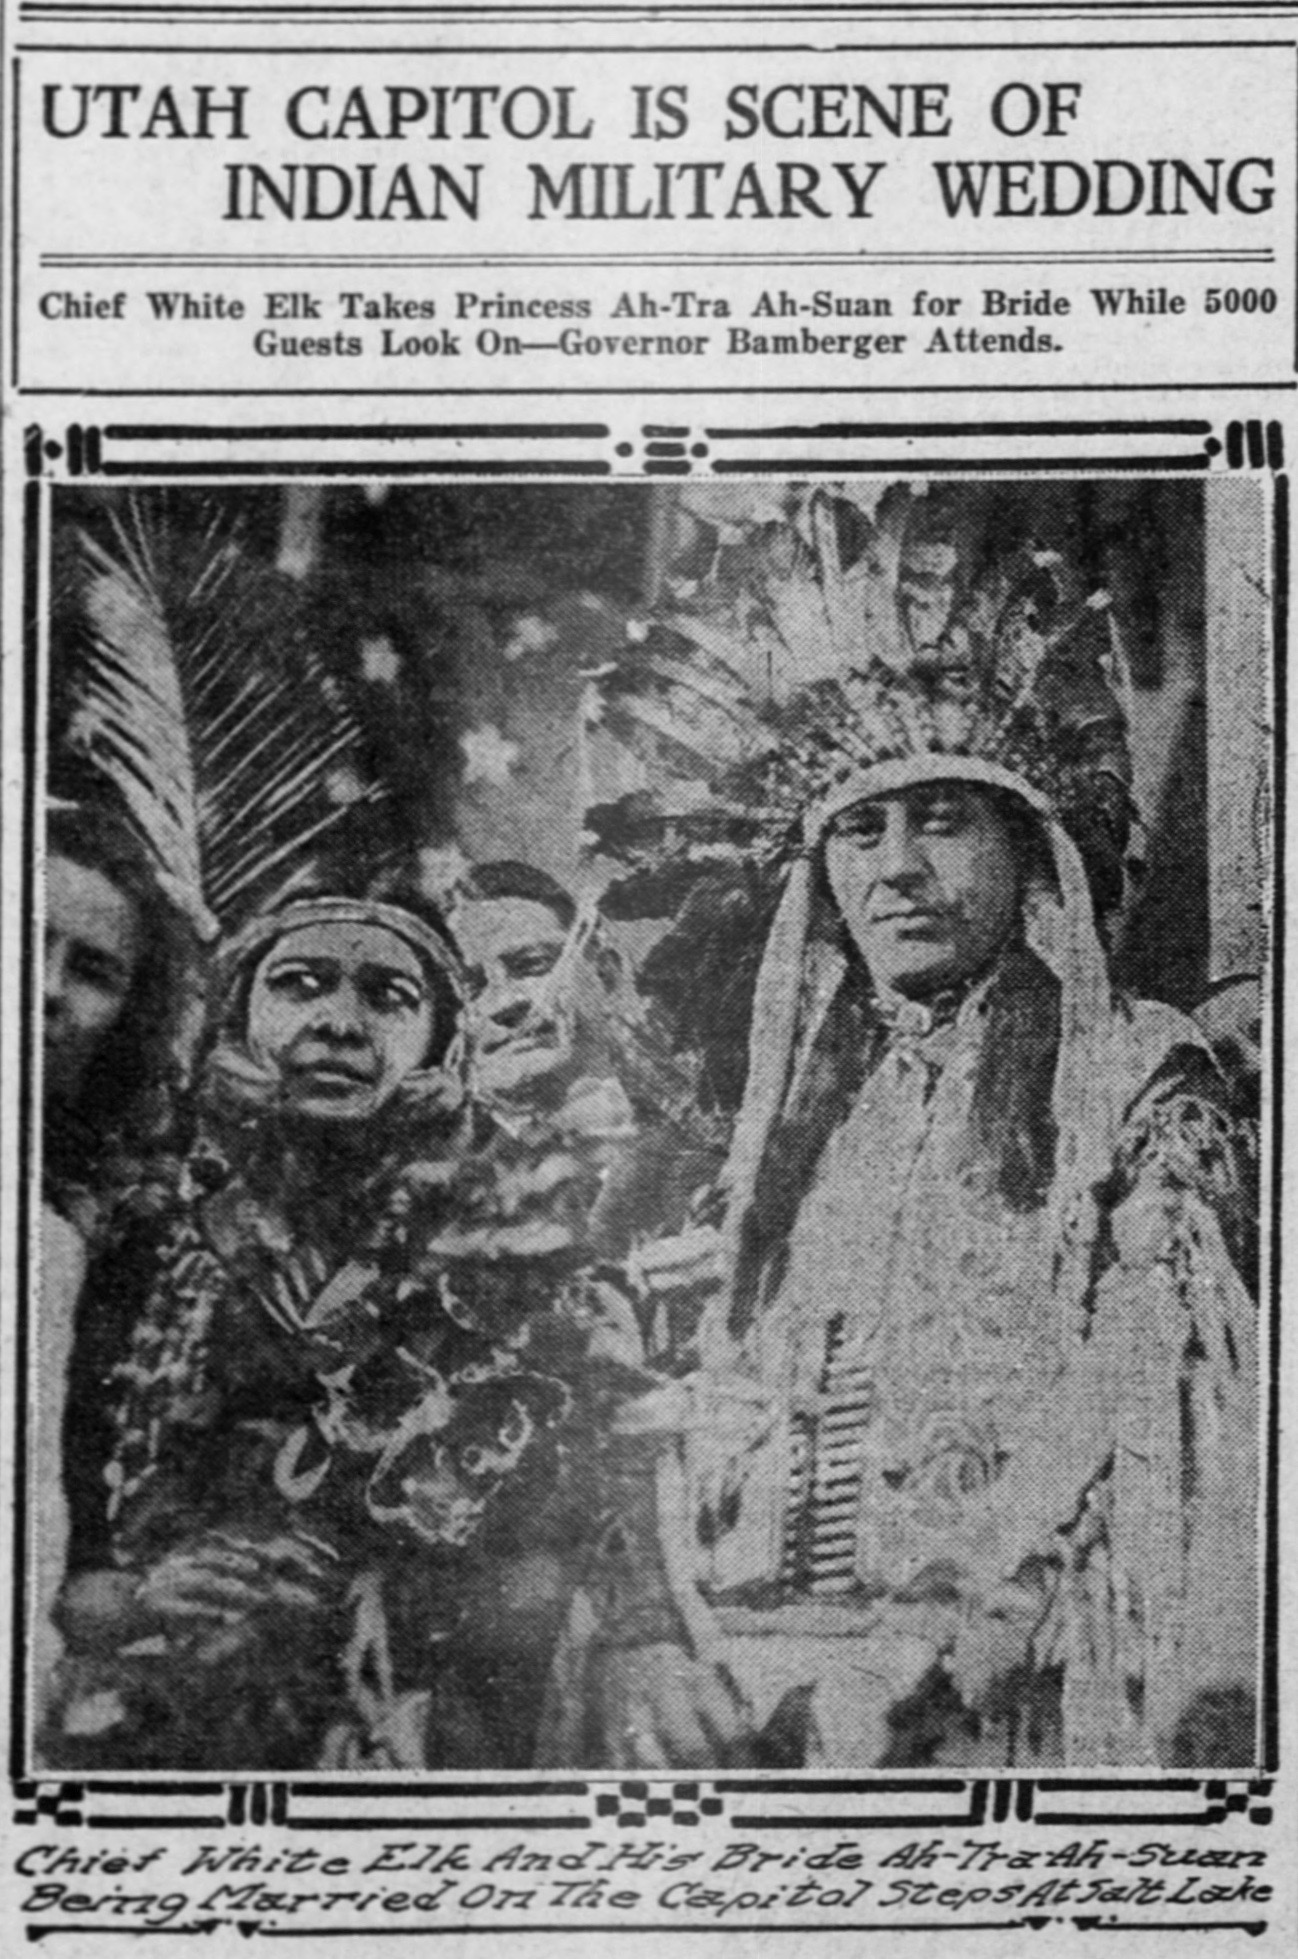 Newspaper story about Chief White Elk's first marriage, March 1918.